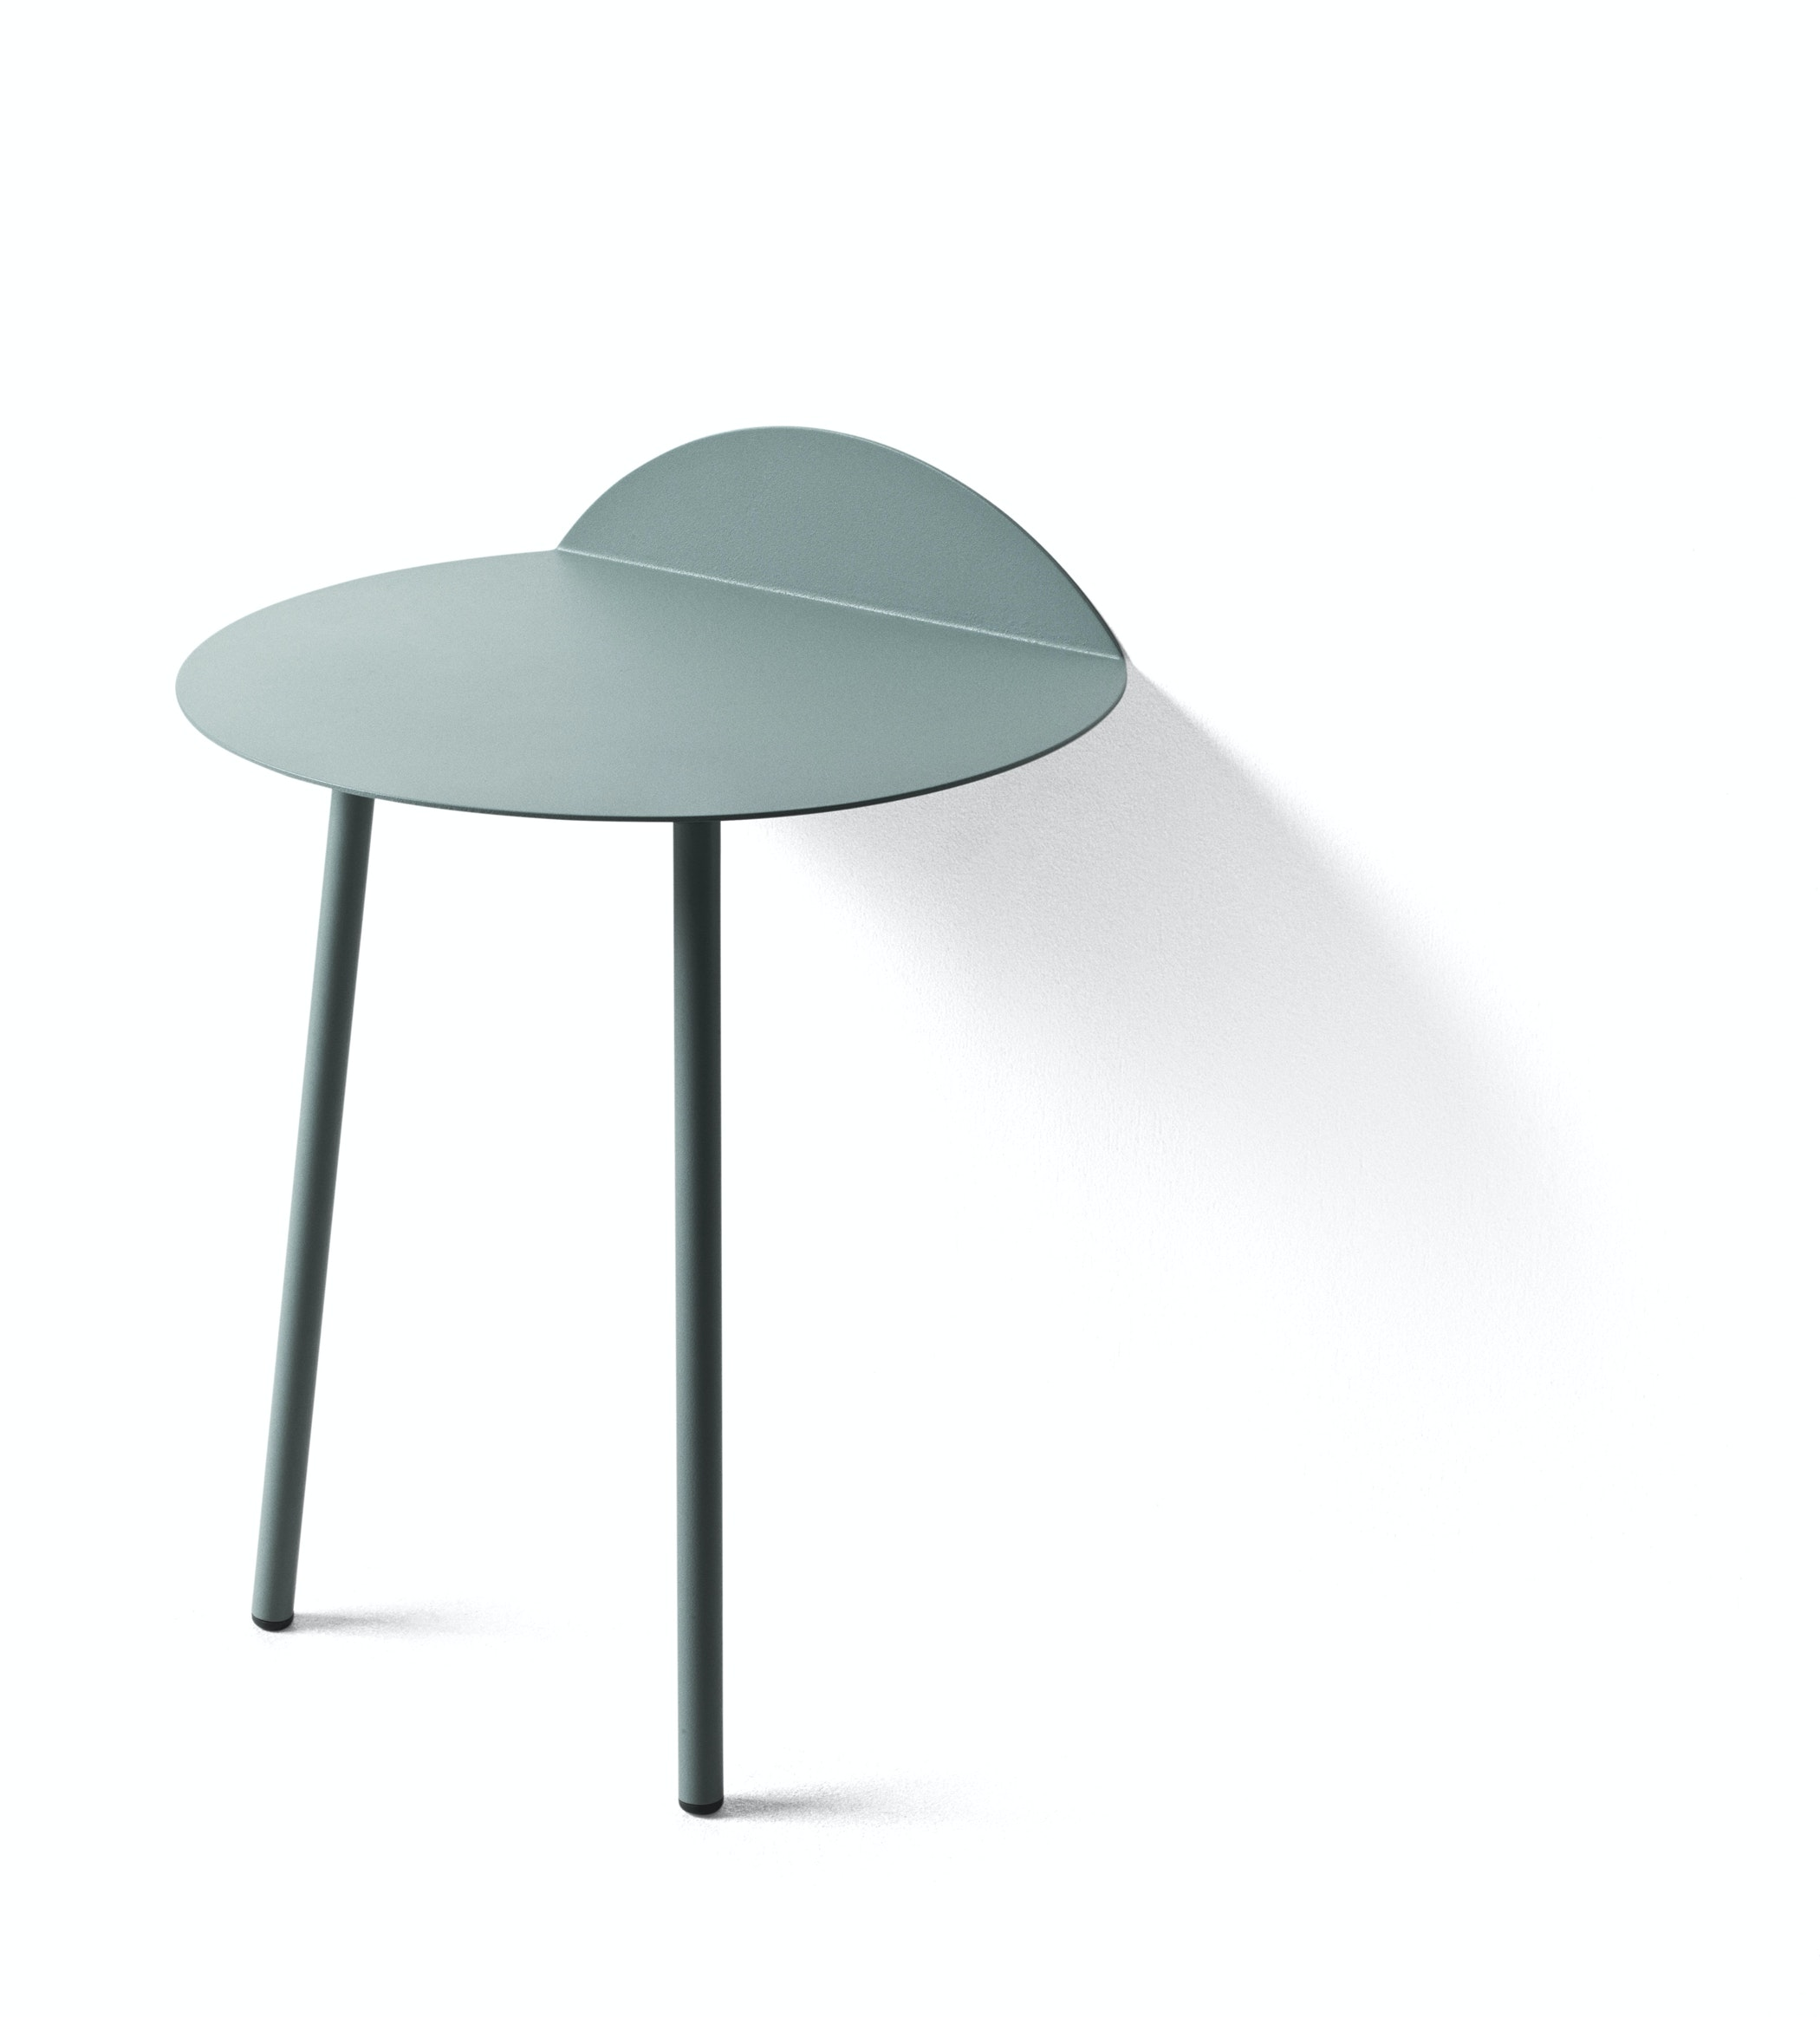 8600469 Yeh Wall Table Low Moss Green 02 Download 72Dpi Jpg Rgb 290522